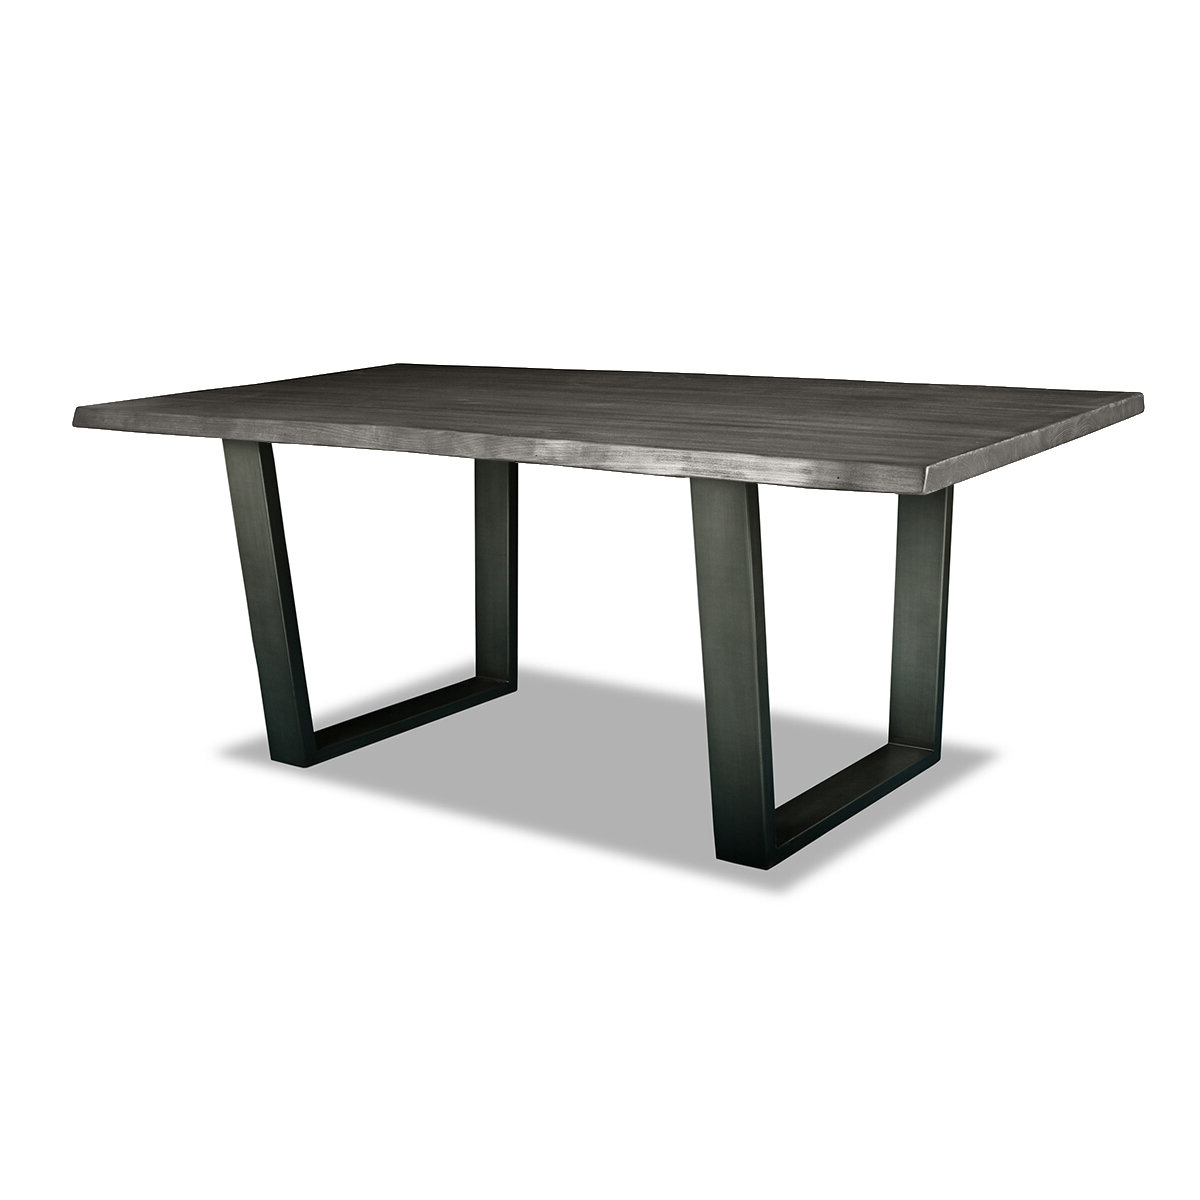 Preferred Acacia Dining Tables With Black Rocket Legs Inside Bullen Solid Wood Dining Table (View 25 of 30)